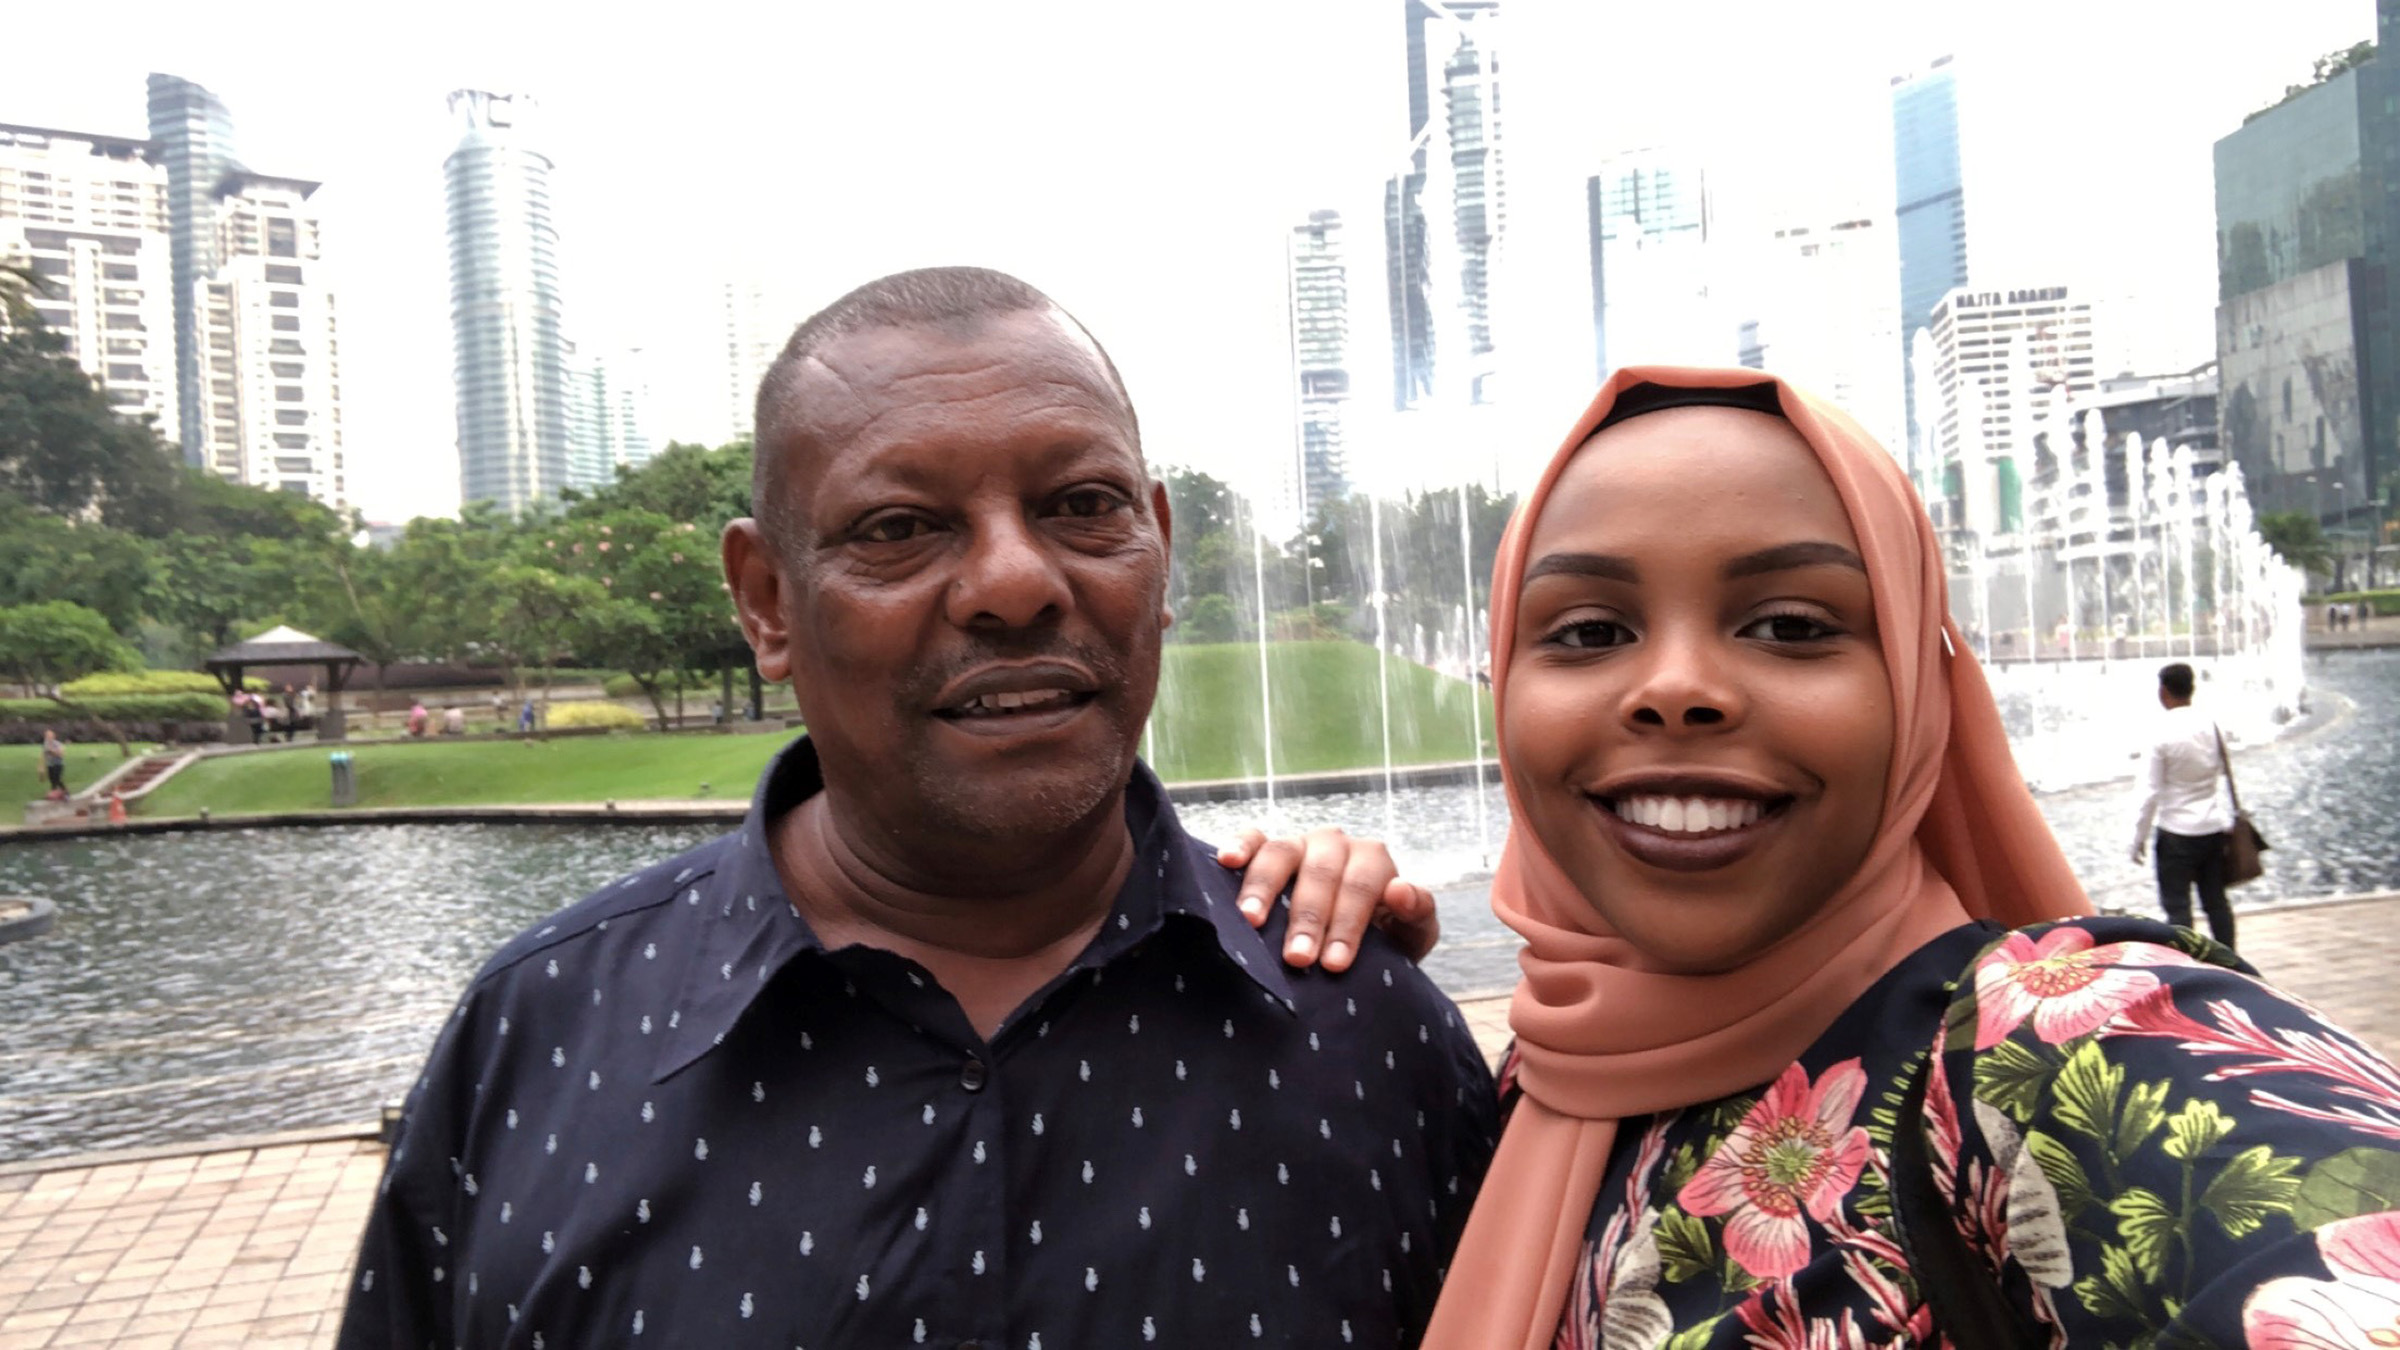 Afnan Salem visiting her father in Malaysia on July 2019. Salem's father has been unable to reunite with his family in the US because of Trump's Muslim and African ban.